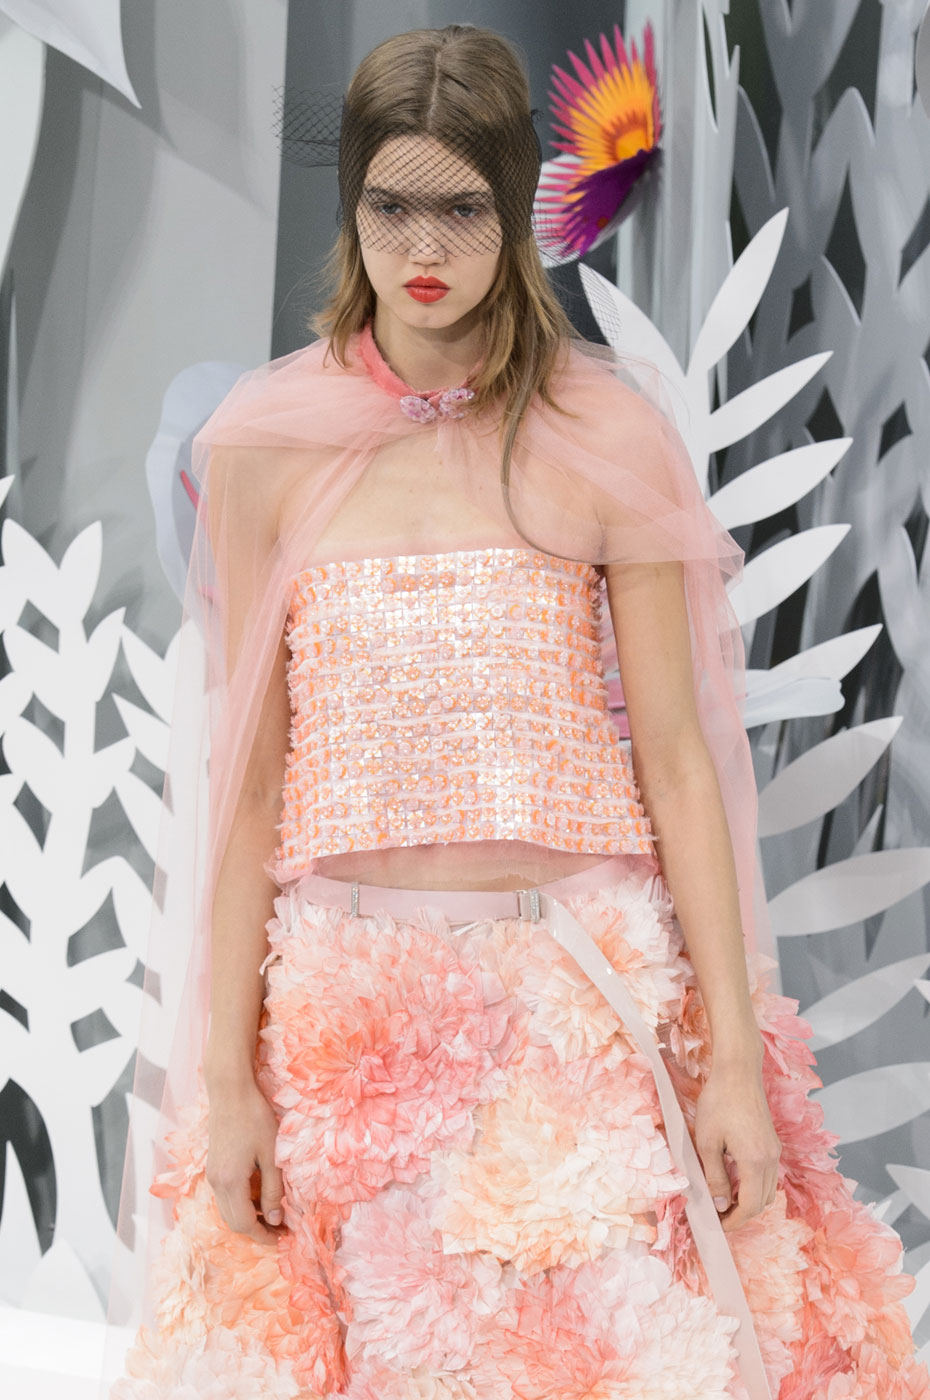 Chanel-fashion-runway-show-haute-couture-paris-spring-summer-2015-the-impression-140